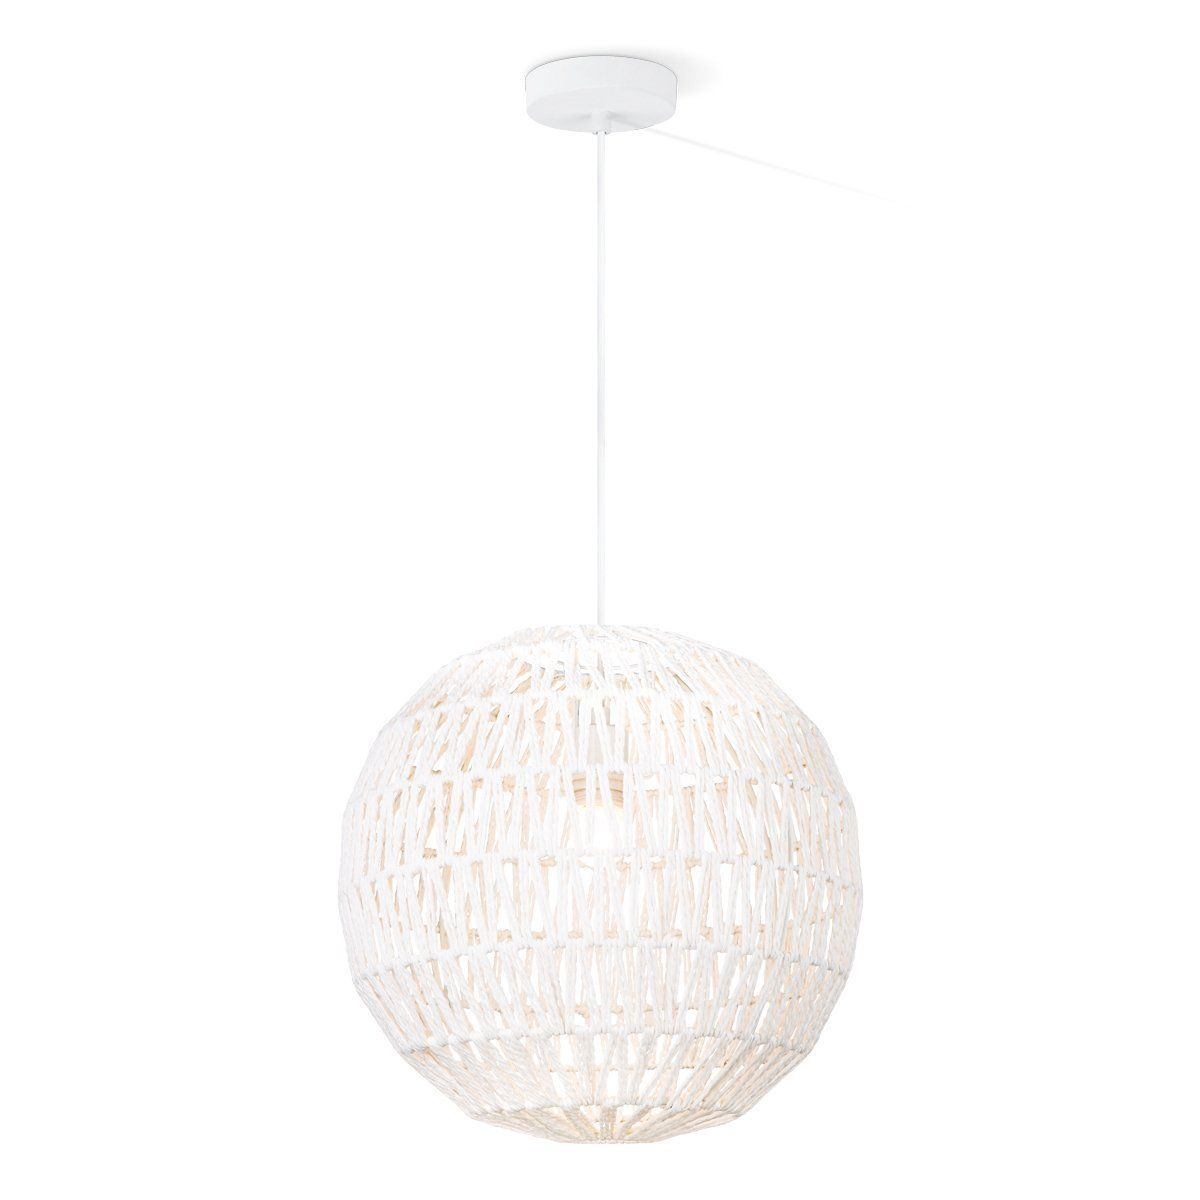 ROPE 40 HANGLAMP SPHERE WIT